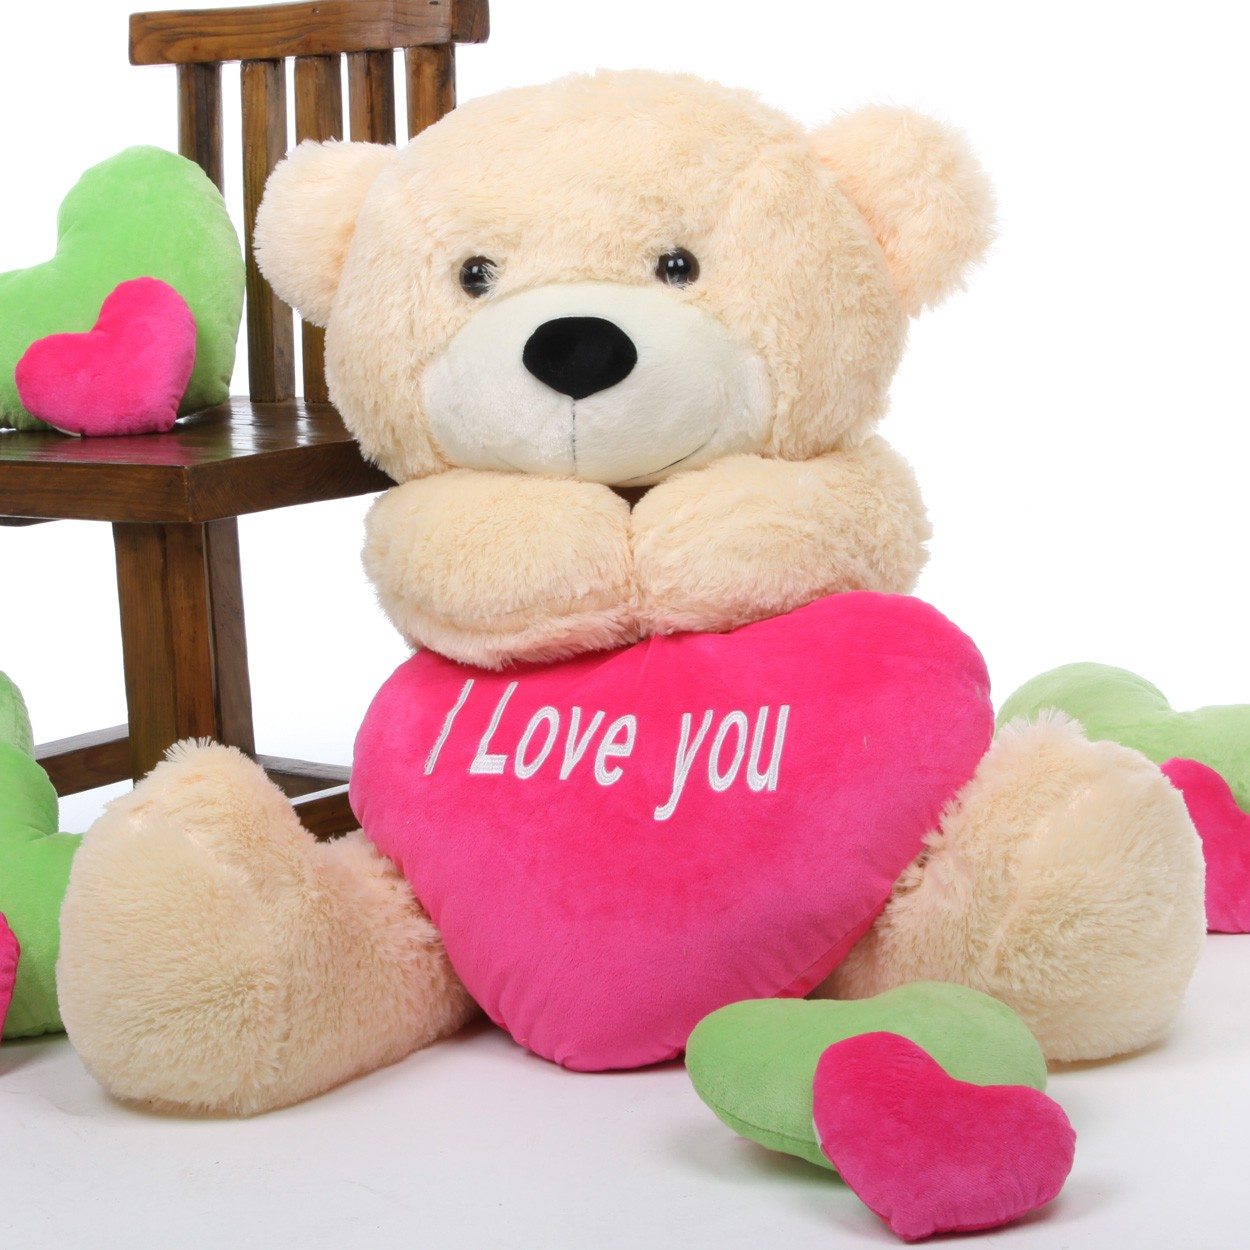 Wallpapers Of Teddy Bears In Love